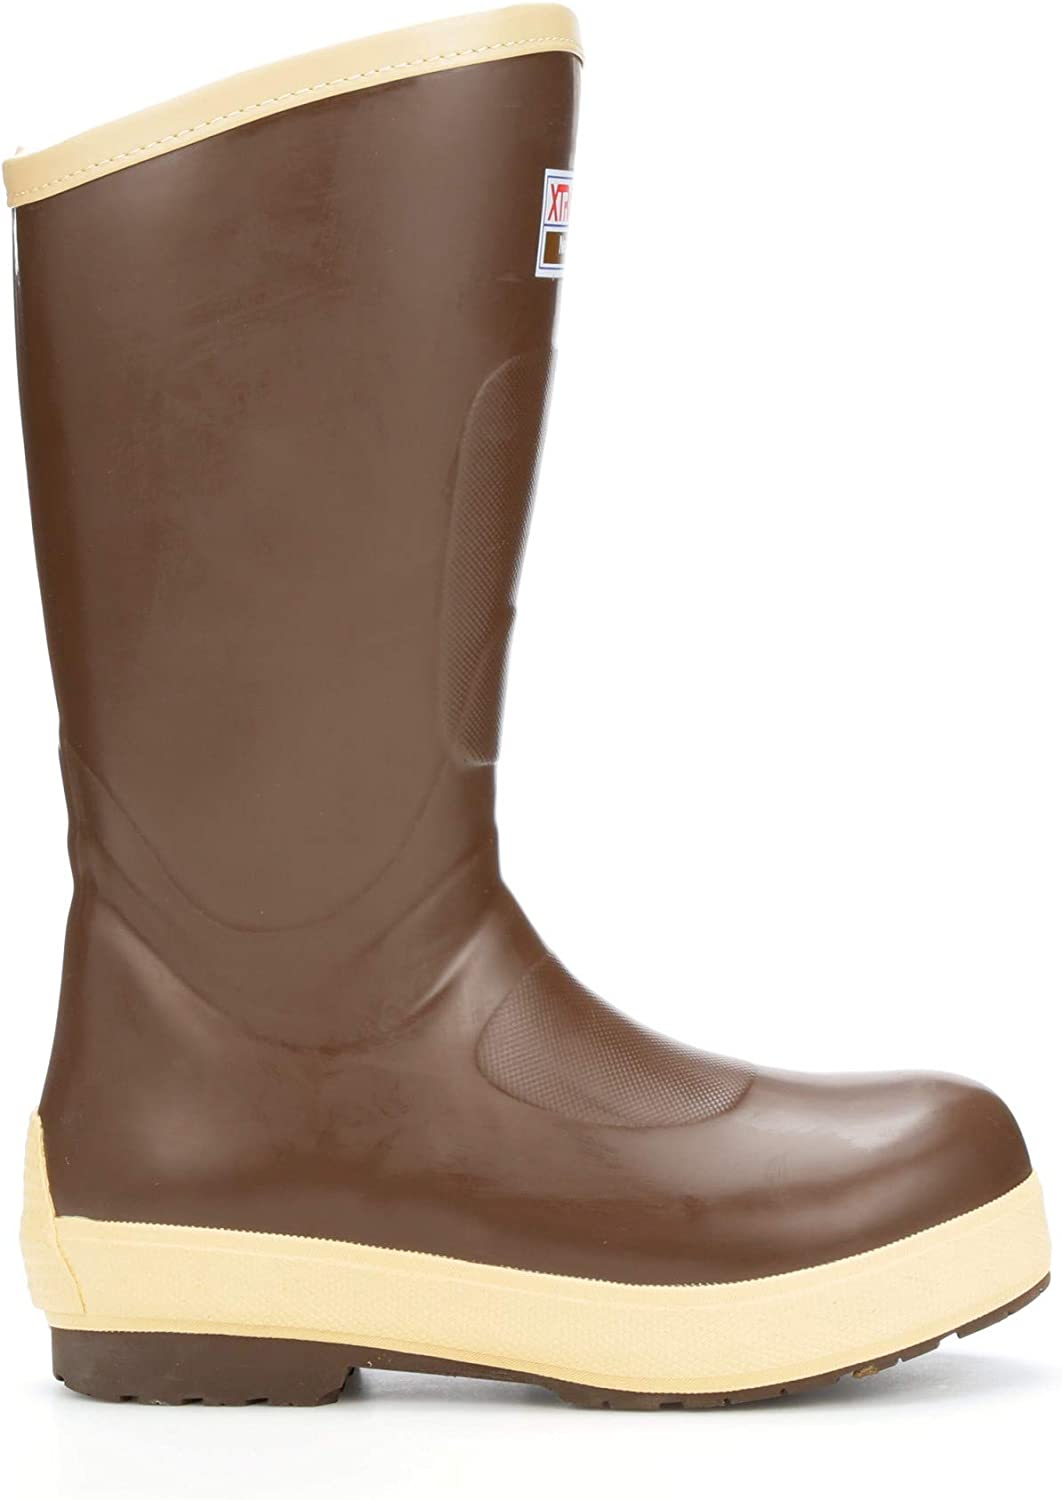 XTRATUF Legacy 2.0 Series 15 Neoprene Insulated Mens Fishing Boots 22291G Copper /& Tan